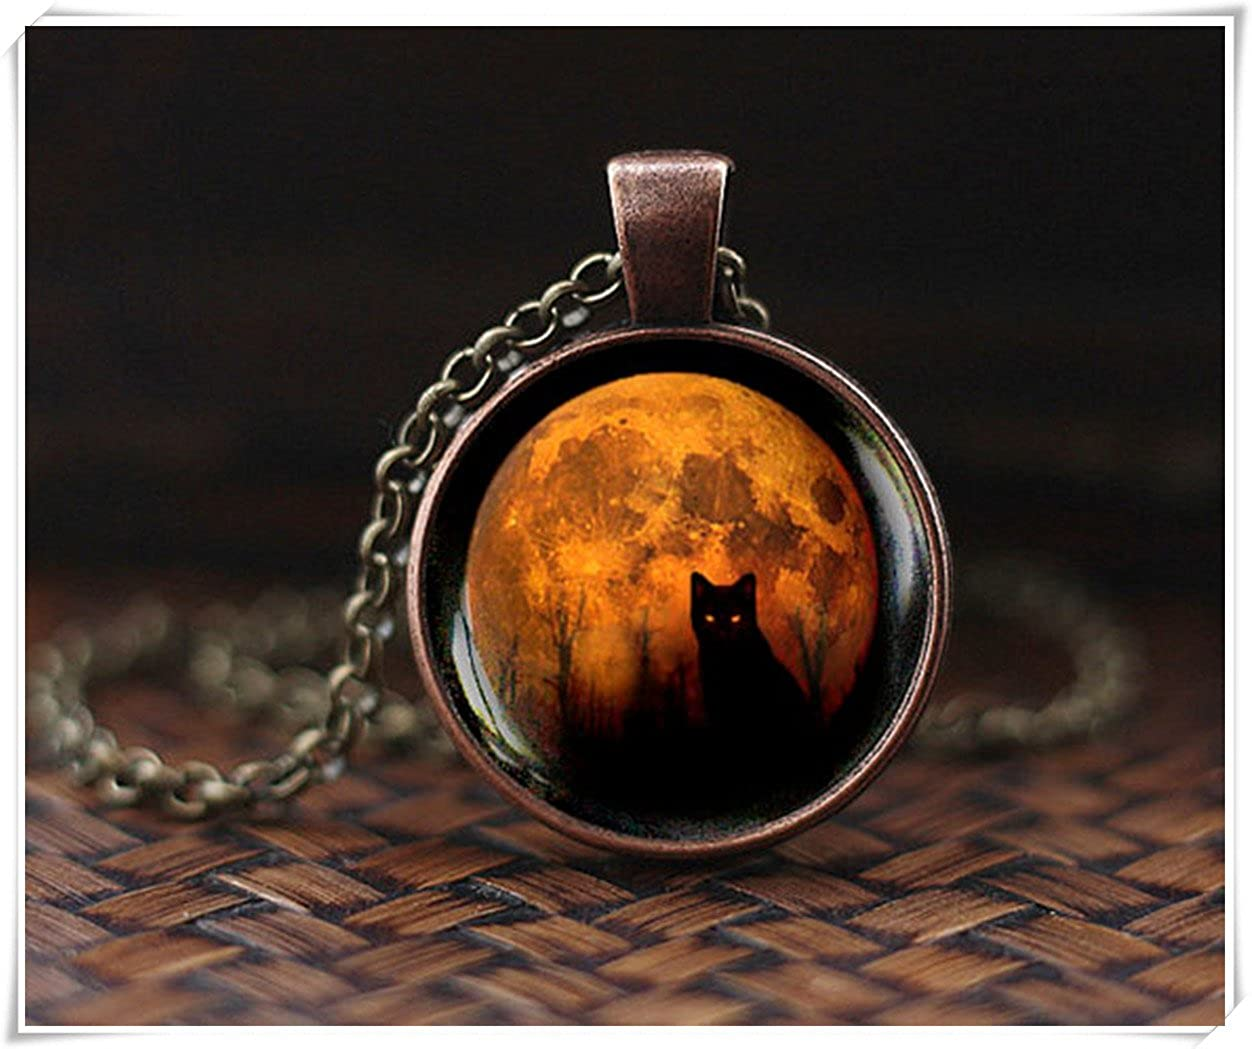 Full Moon Cat Necklace, Halloween Black cat necklace, Wiccan Necklace Dandelion chen